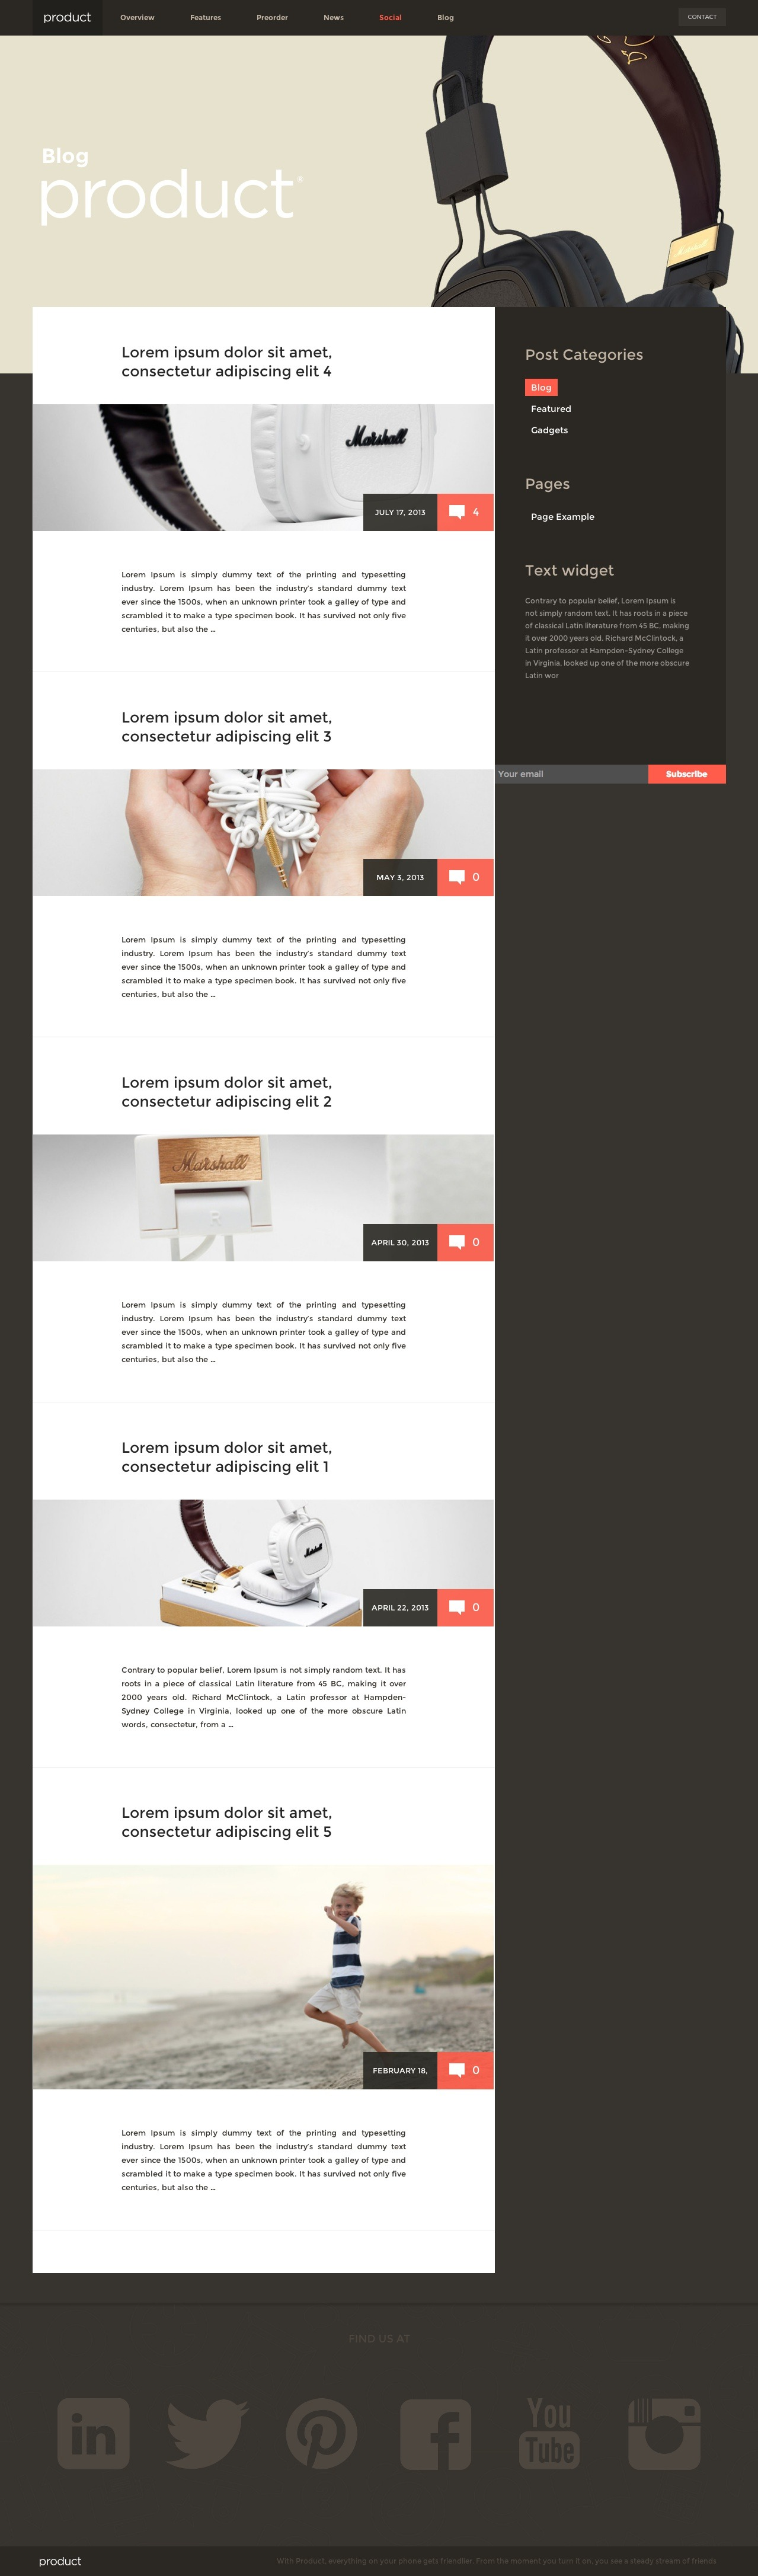 product product by Jewelleries ThemeForest